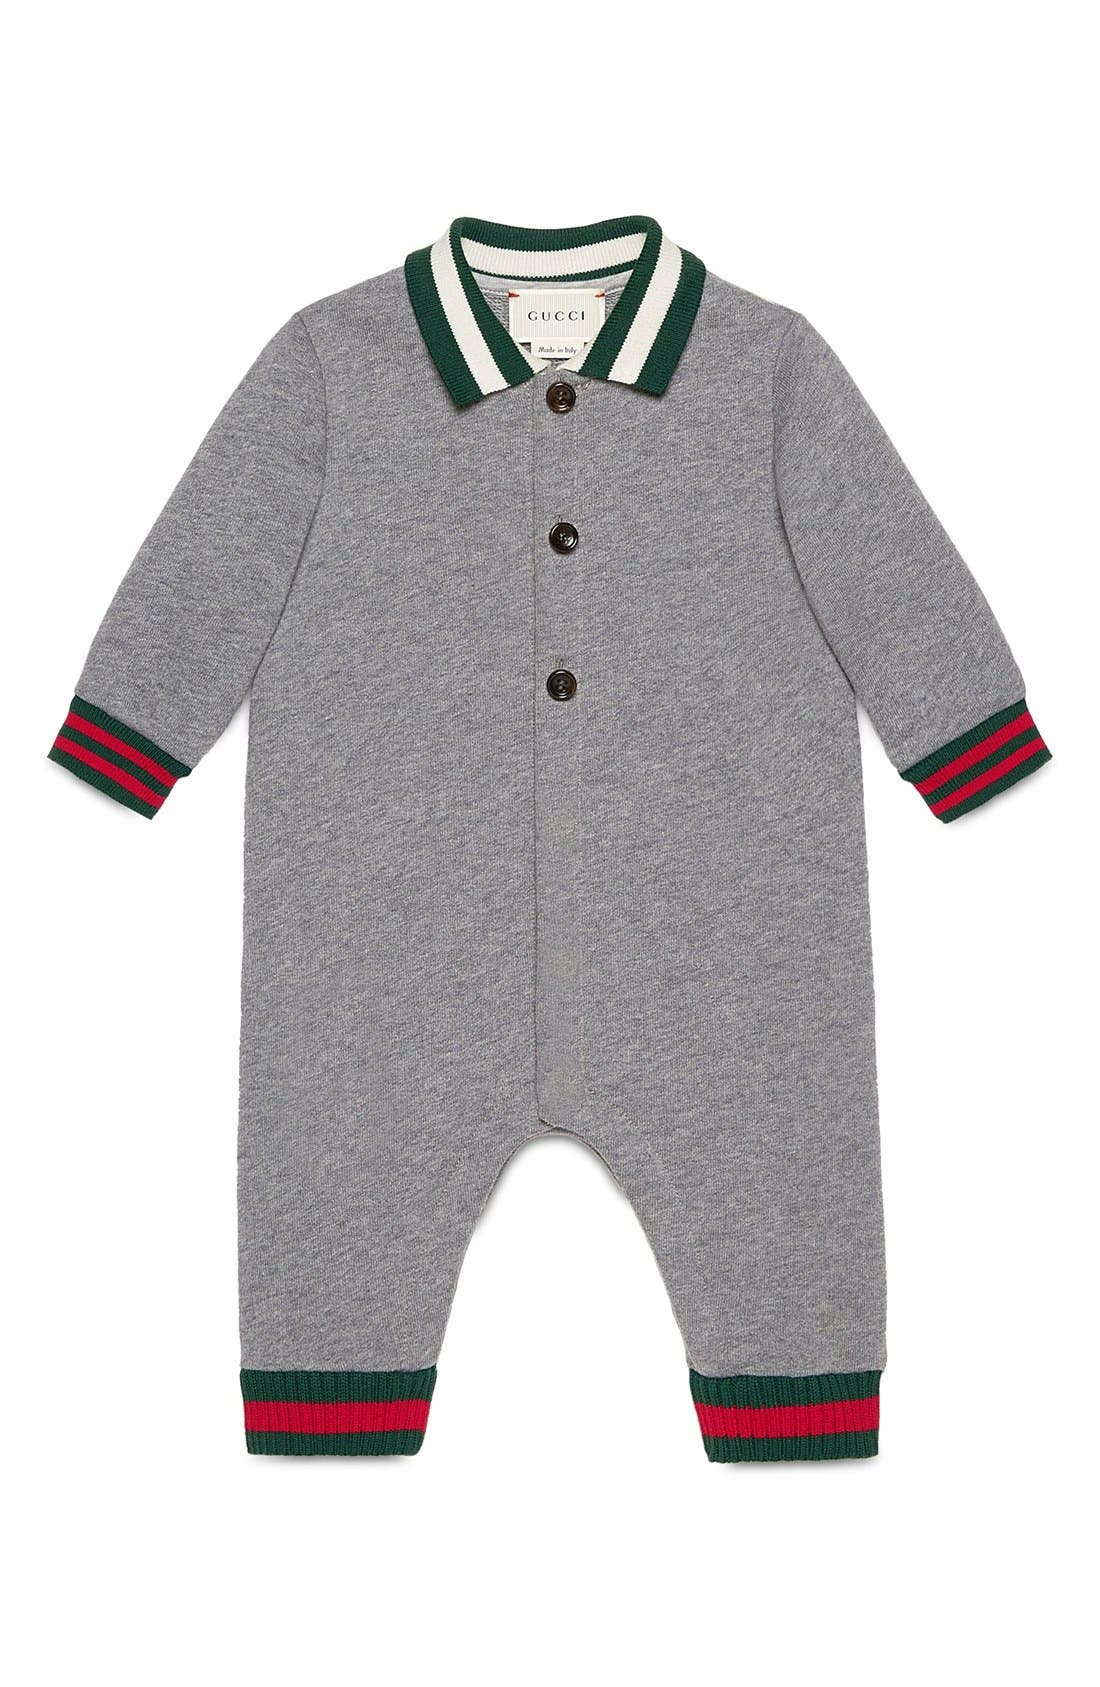 All Baby Boy Gucci Clothes Bodysuits Footies Tops